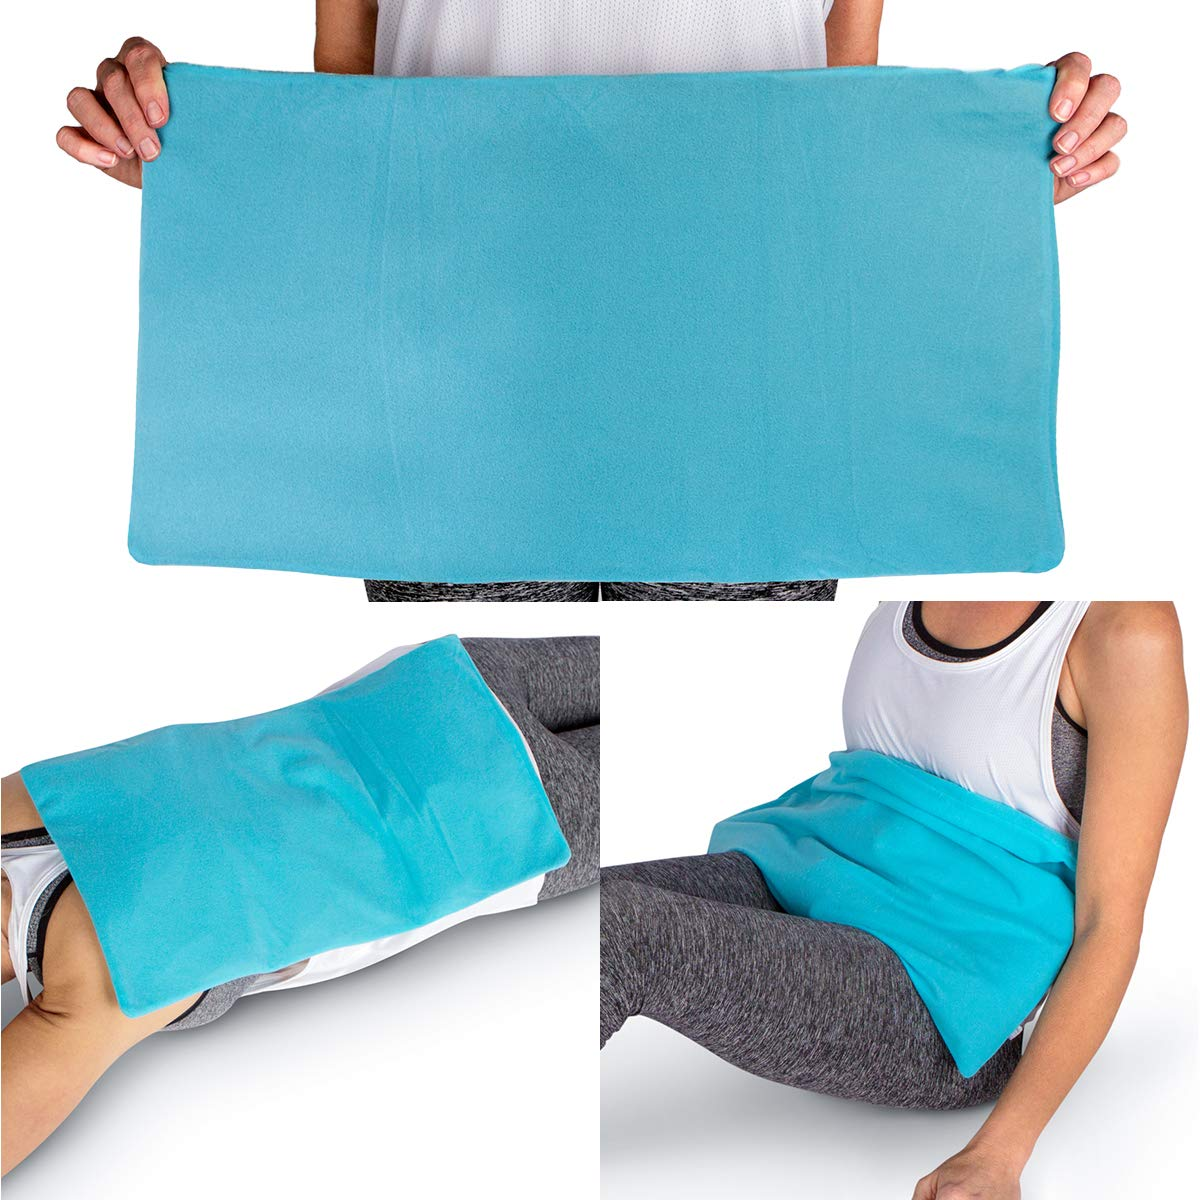 IceWraps Flexible Icing Compress for Therapy 12''x21'' Reusable Oversize Multipurpose Cold Clay Pack for Back, Sciatica, Knee, Hip Pain Relief - Includes Free Bonus Fabric Cover by IceWraps